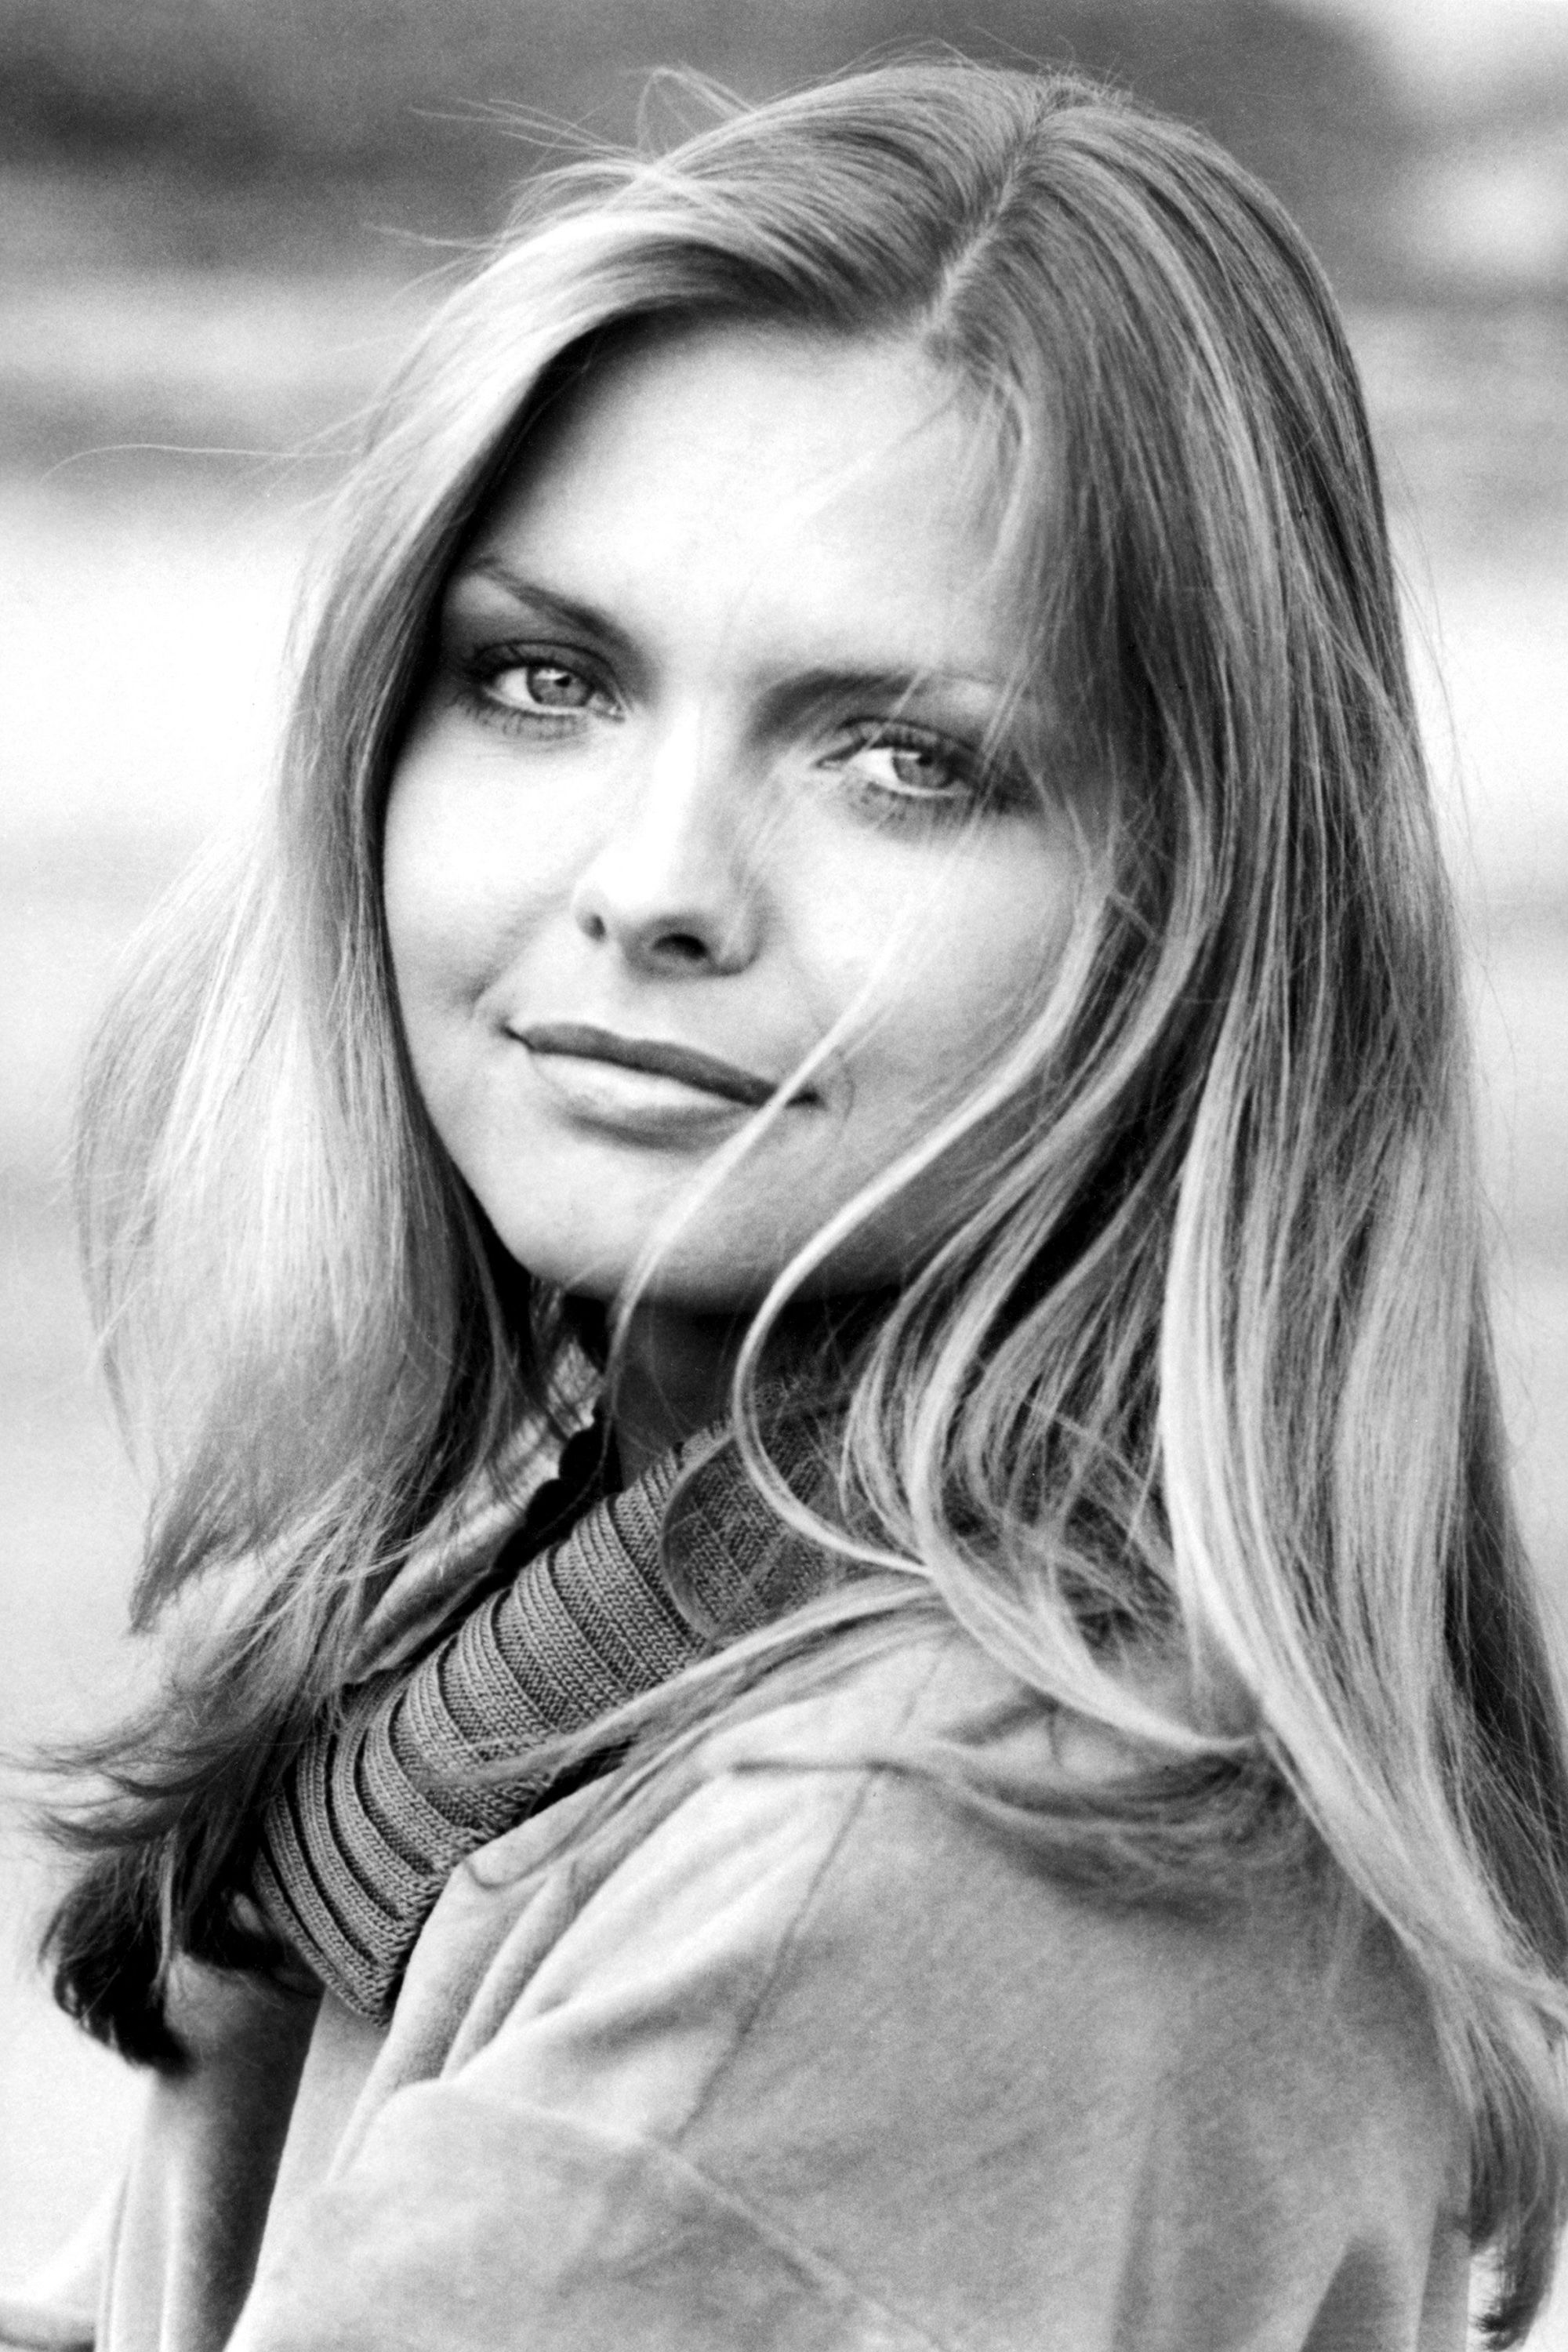 https://hips.hearstapps.com/hbz.h-cdn.co/assets/15/34/hbz-the-list-80s-icons-michelle-pfeiffer-rexusa.jpg?crop=1.0xw:1xh;center,top&resize=768:*